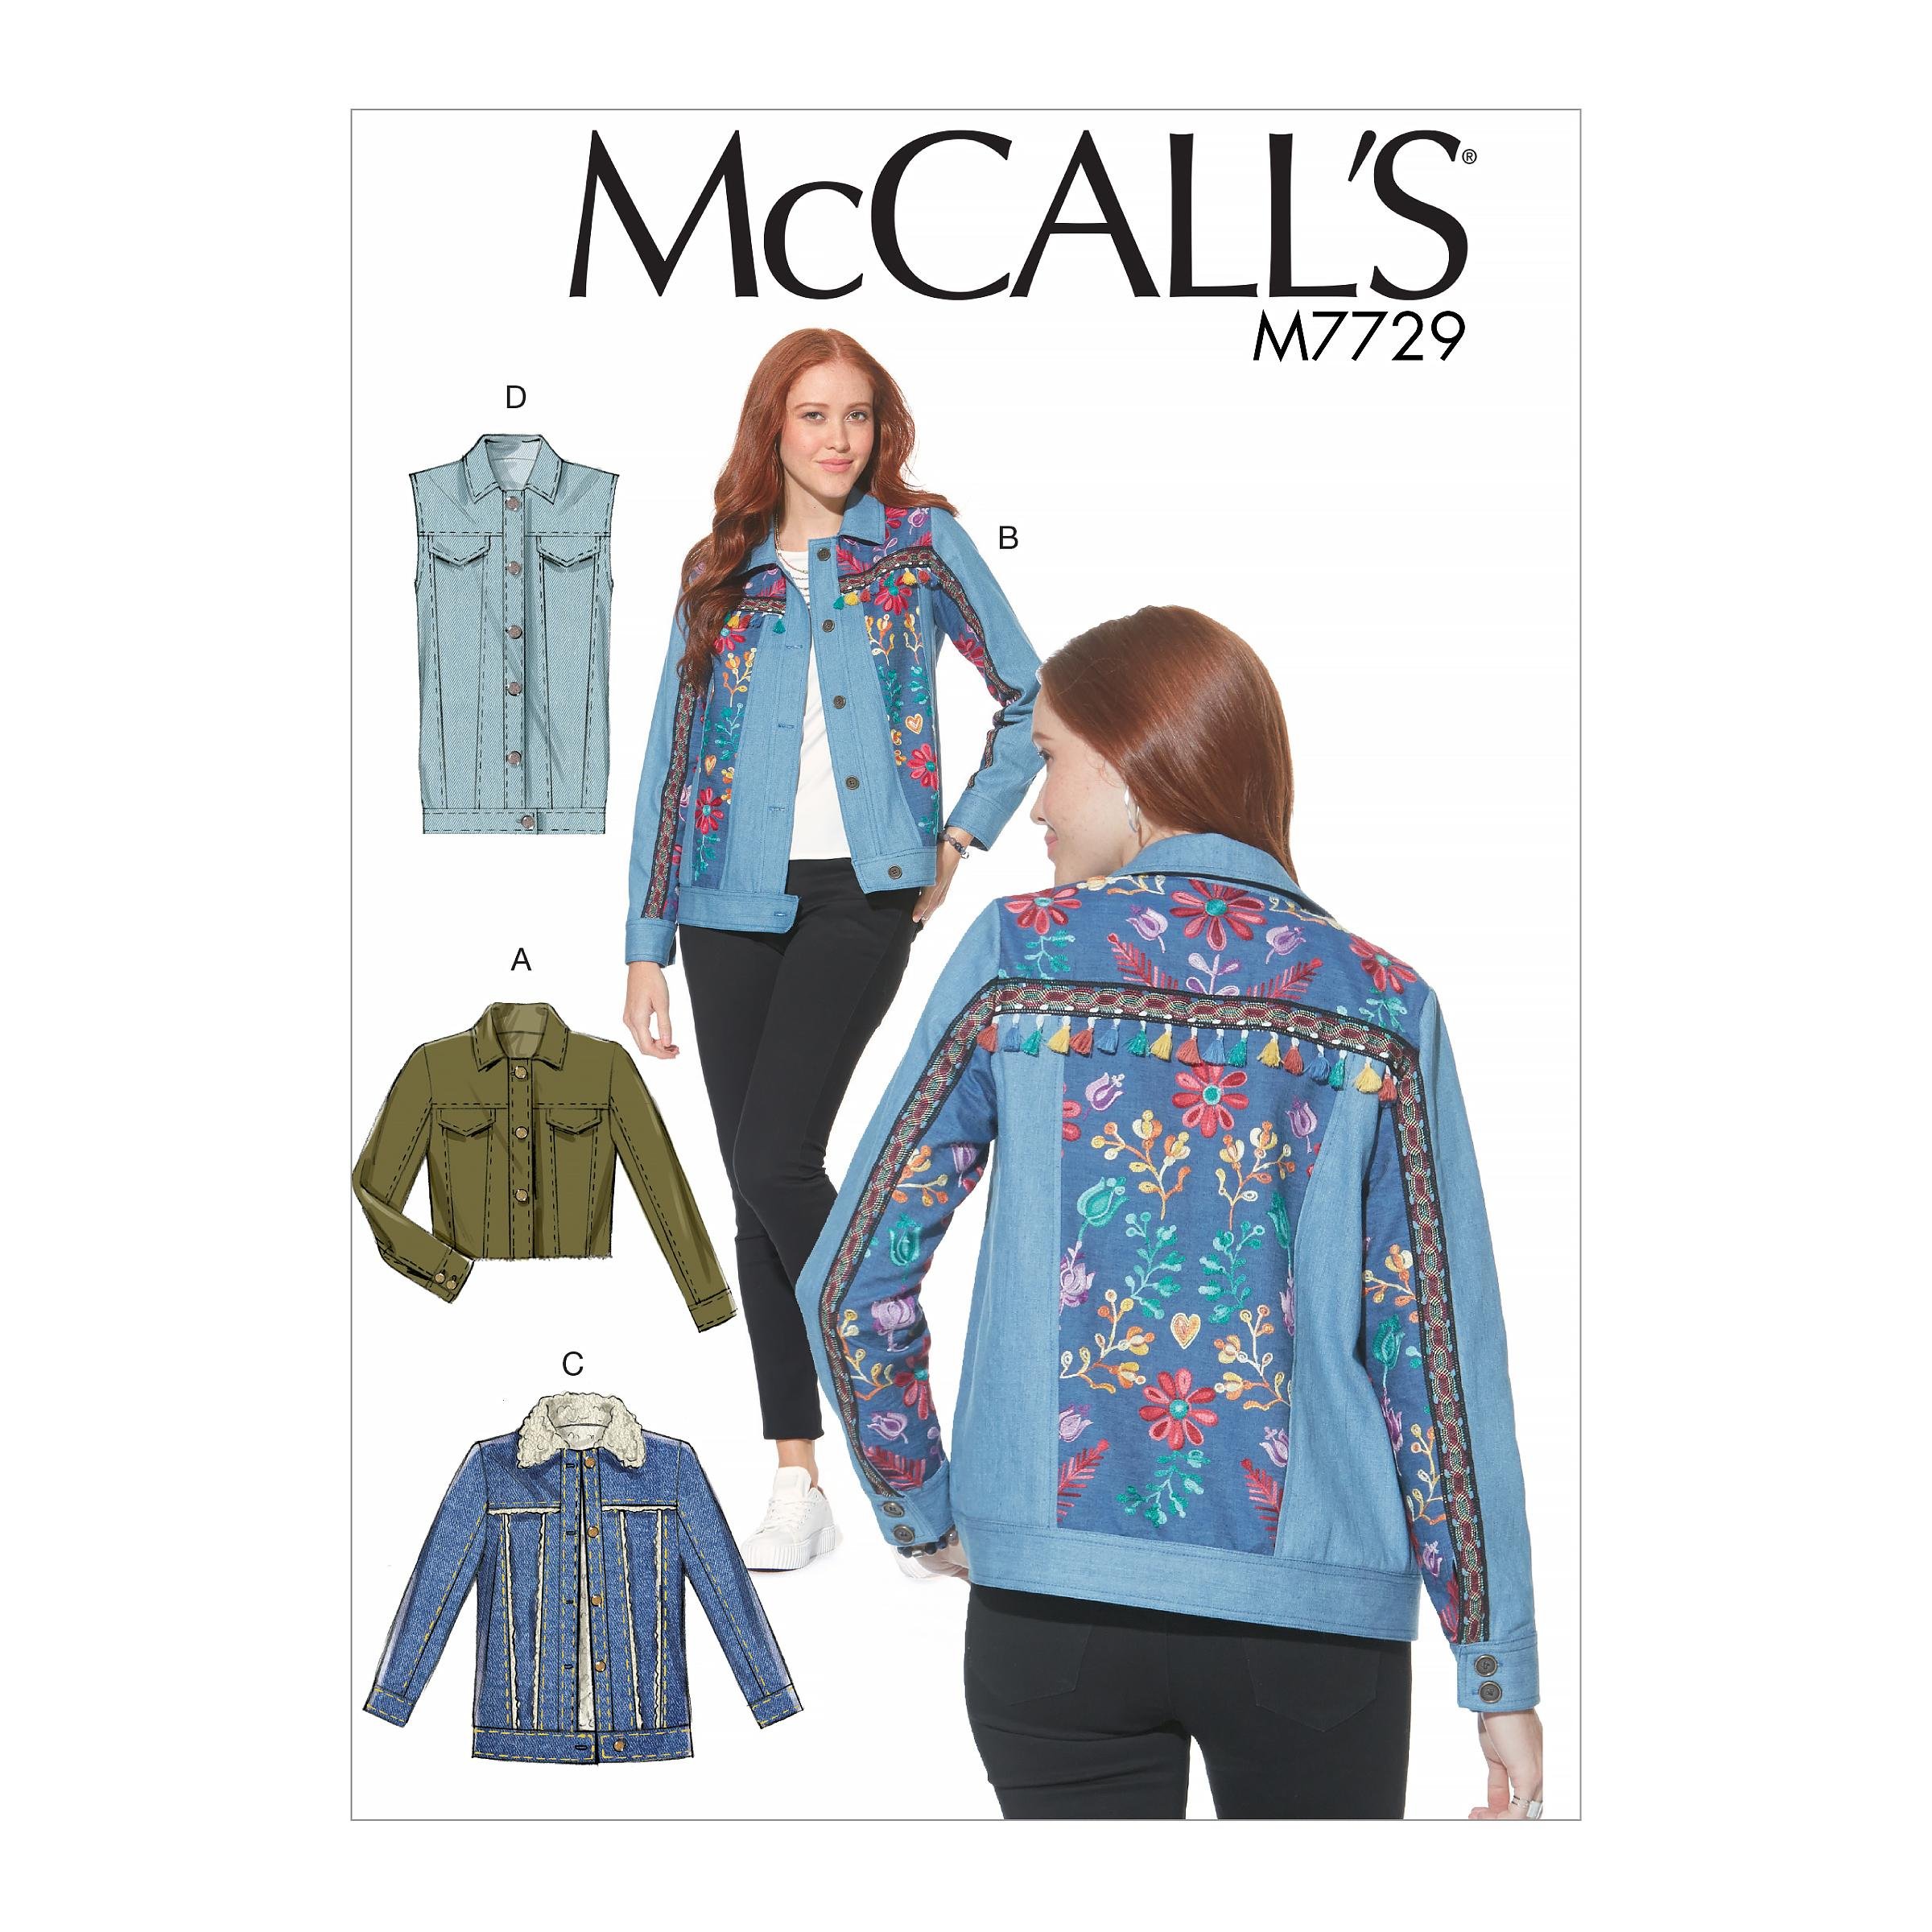 McCalls M7729 Misses Jackets & Vests